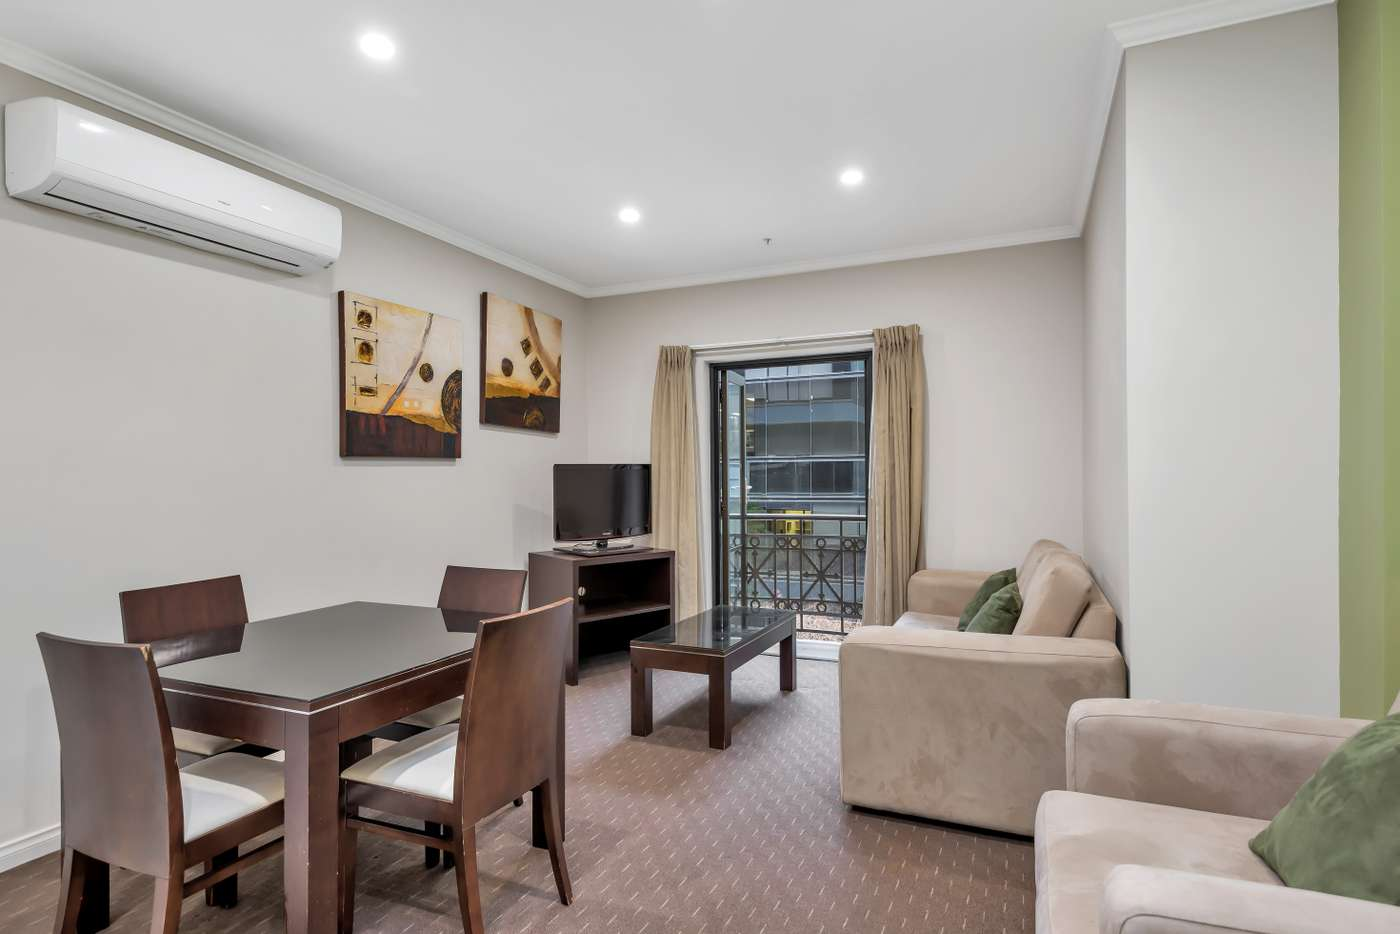 Sixth view of Homely apartment listing, 206/88 Frome Street, Adelaide SA 5000